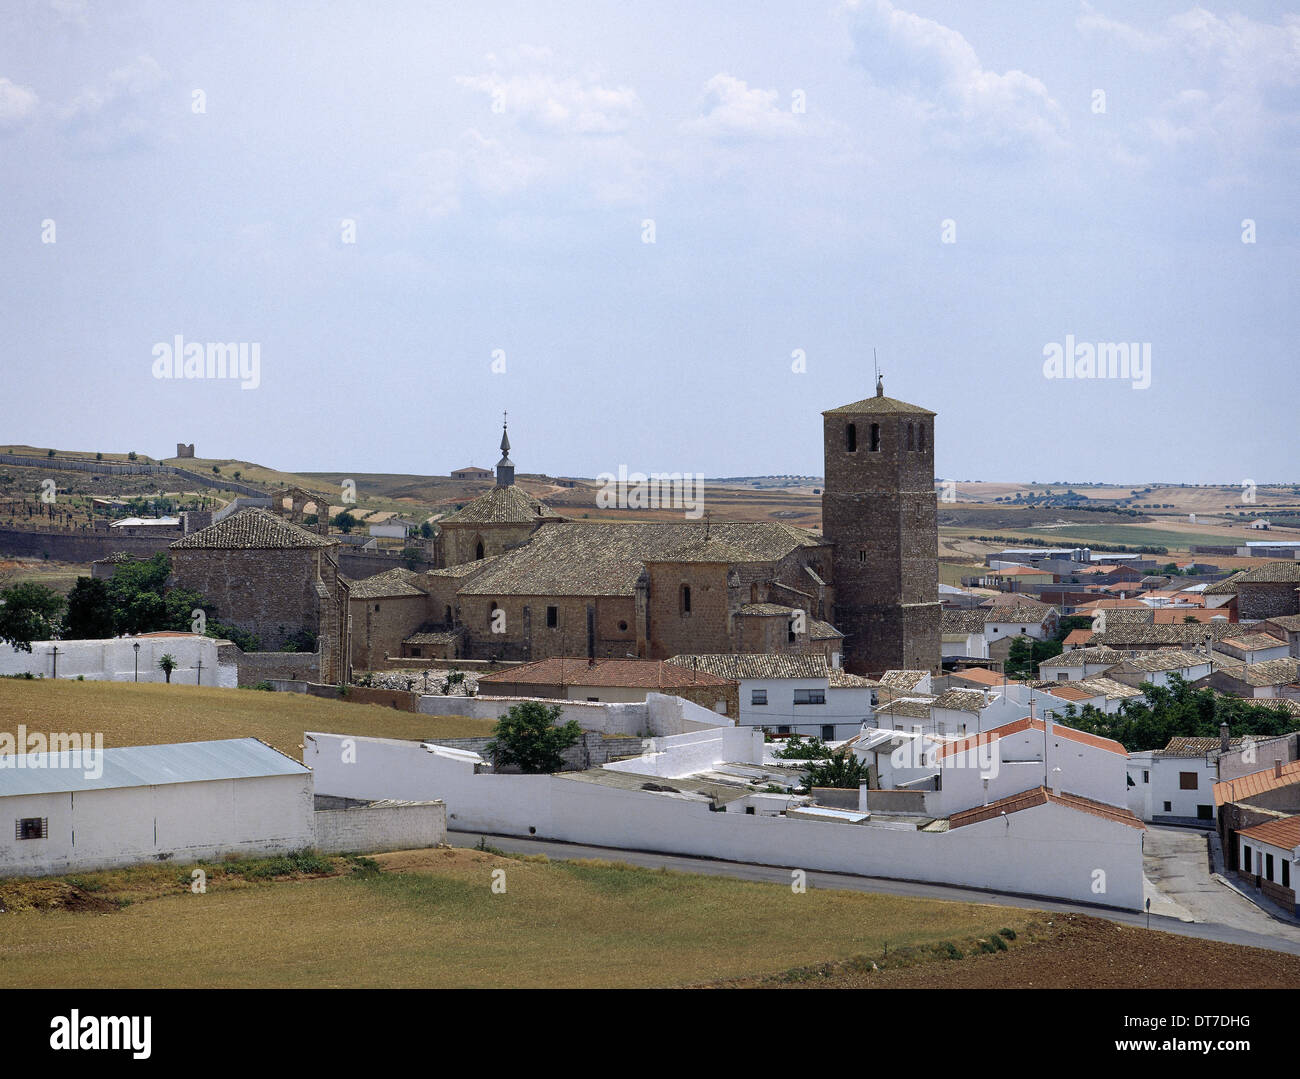 Spain. Castile-La Mancha. Belmonte. View of the village with Collegiate Church of San Bartolome. Province of Cuenca. - Stock Image